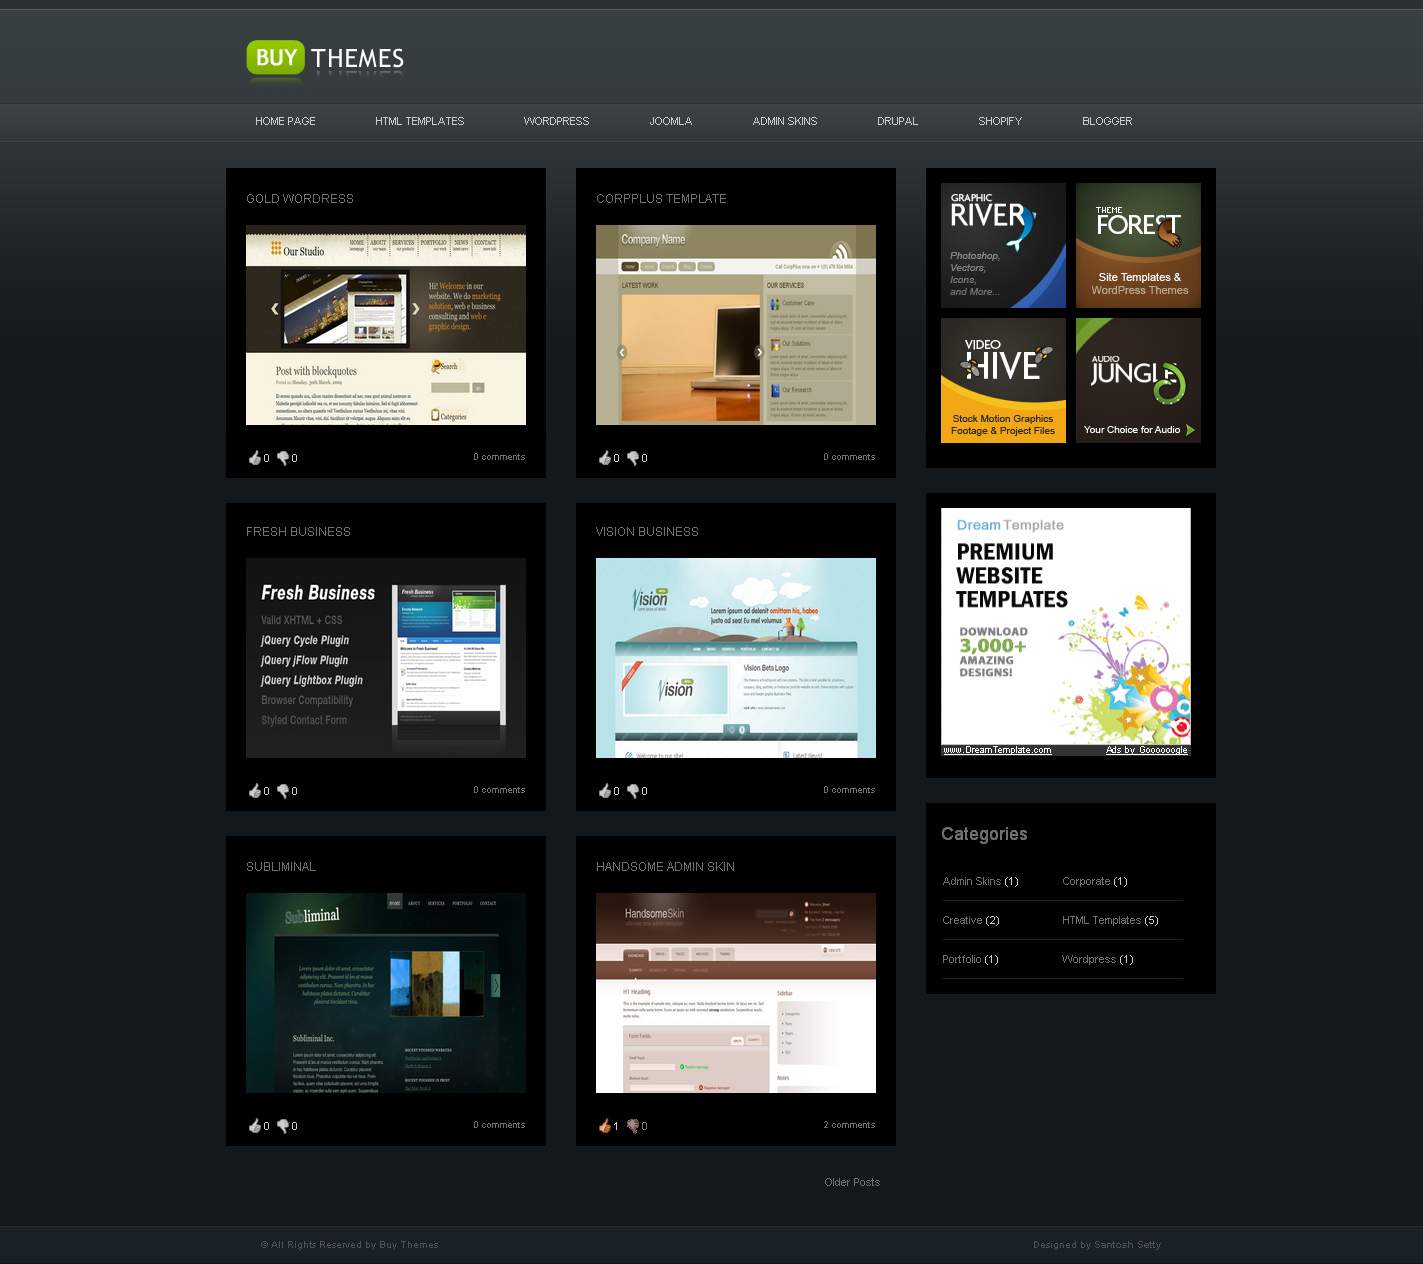 Buy Themes - Blogger Gallery Template - Home of Buy Themes